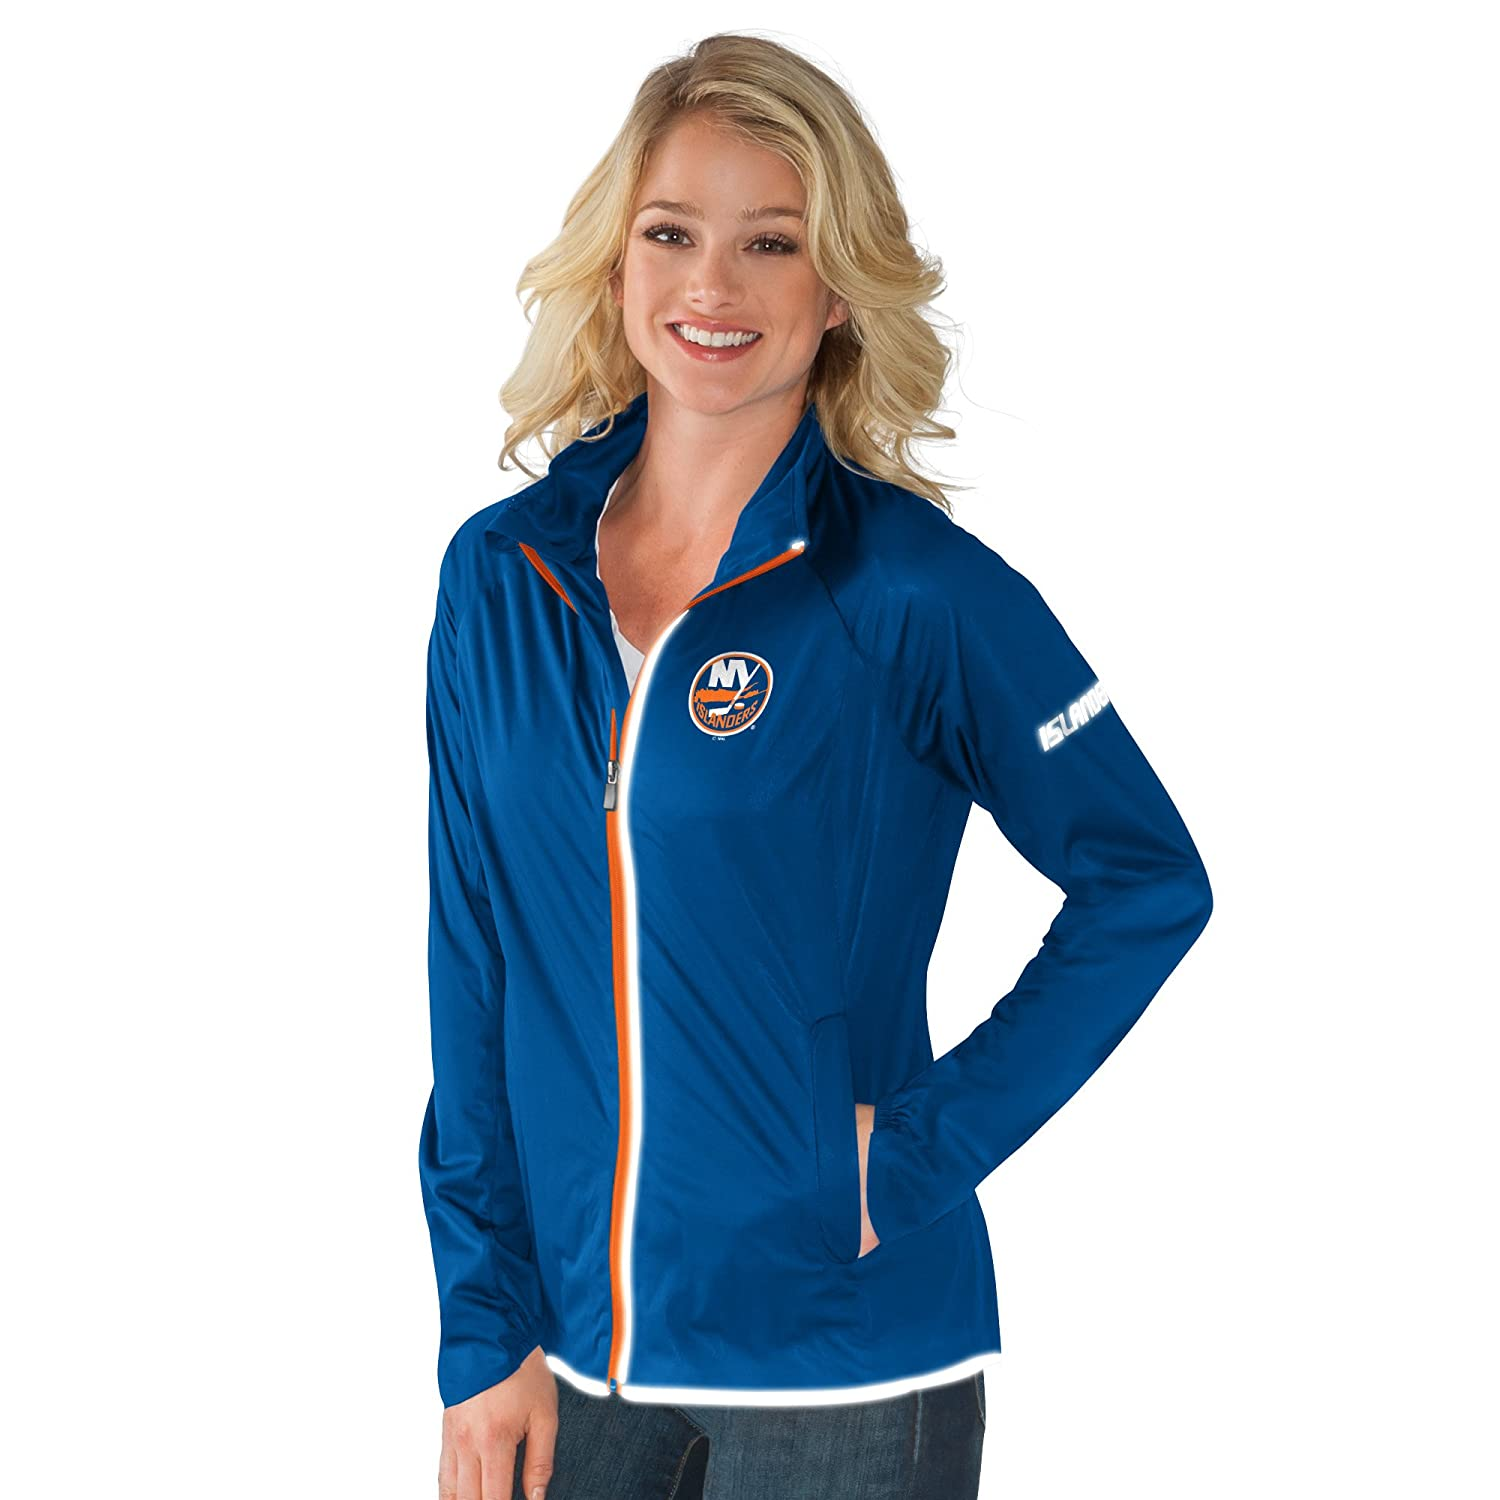 GIII For Her NHL Womens Batter Light Weight Full Zip Jacket